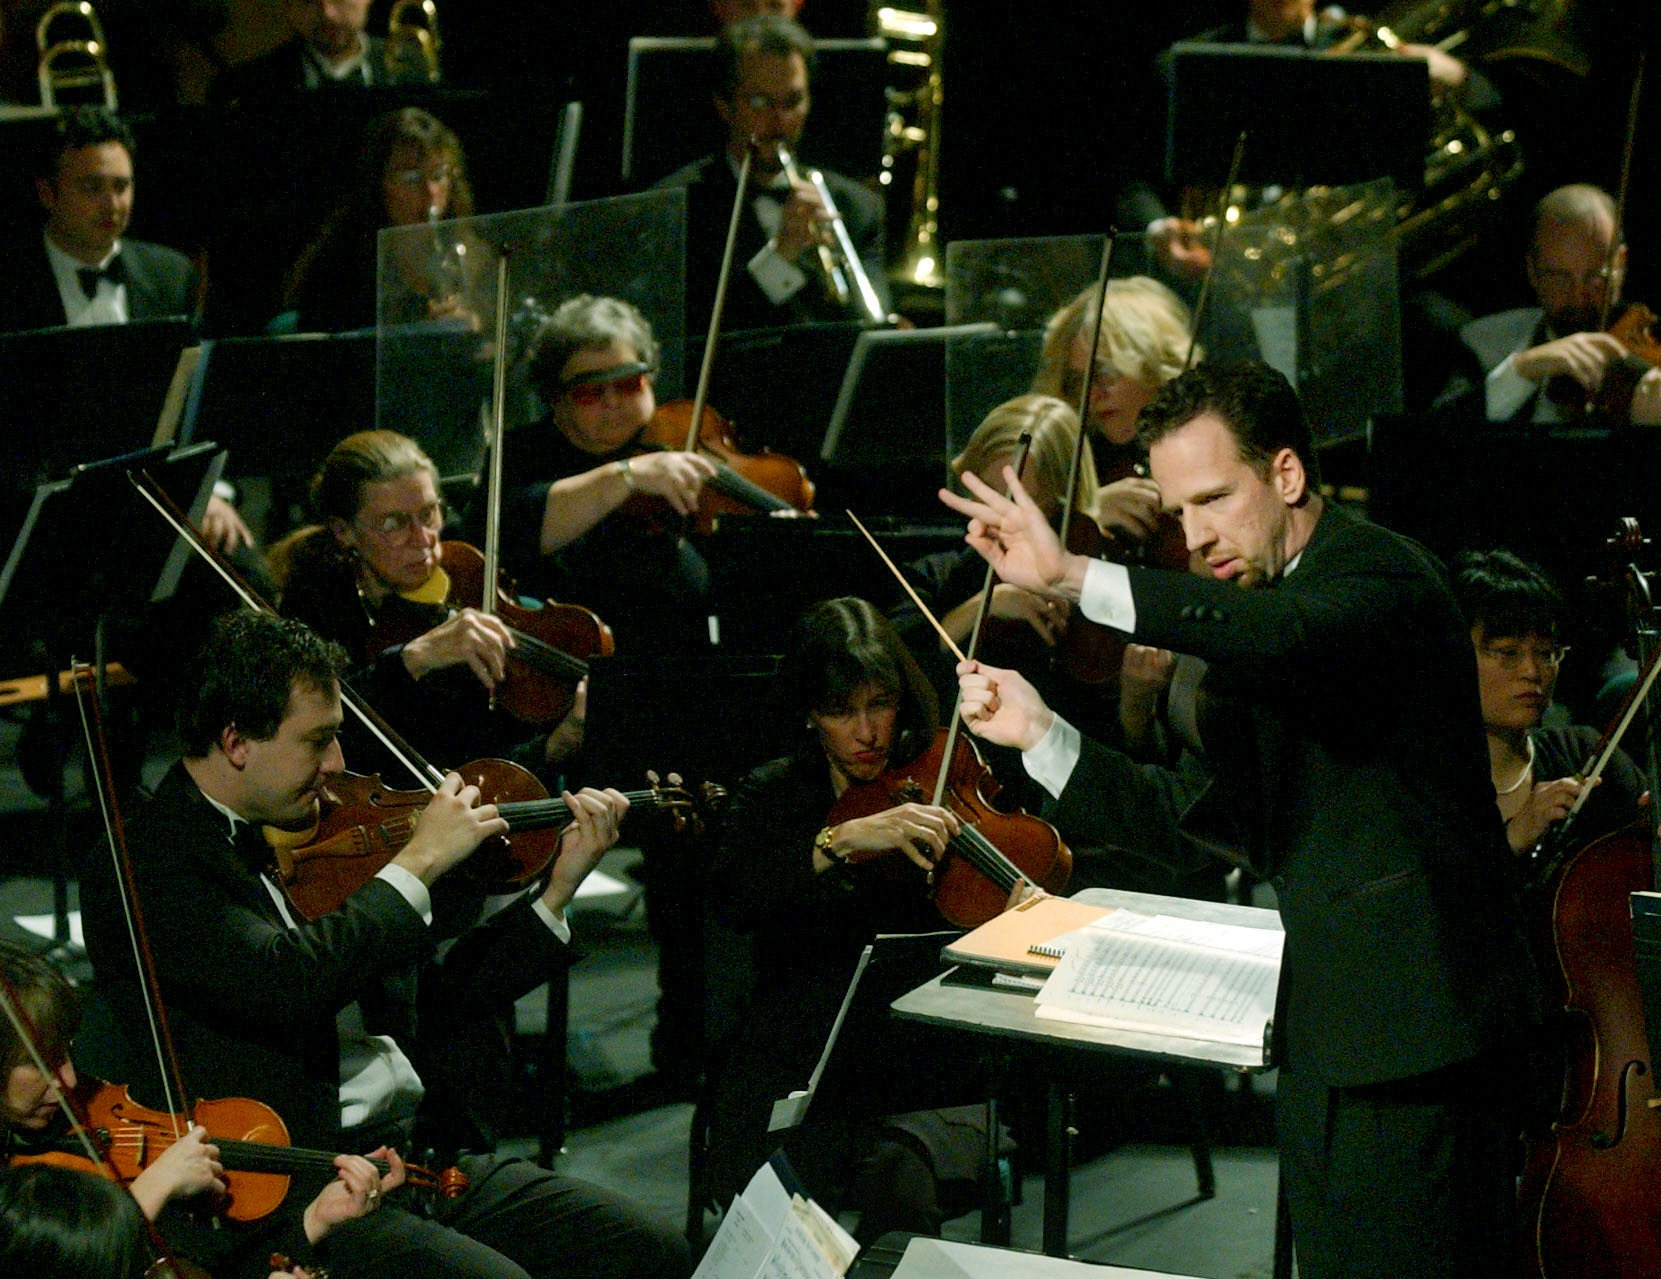 Scott O'Neil conducts the Utah Symphony Orchestra at Abravanal Hall for members of the IOC and their guest. photo: michael brandy. 2/3/02 (Submission date: 03/31/2004)